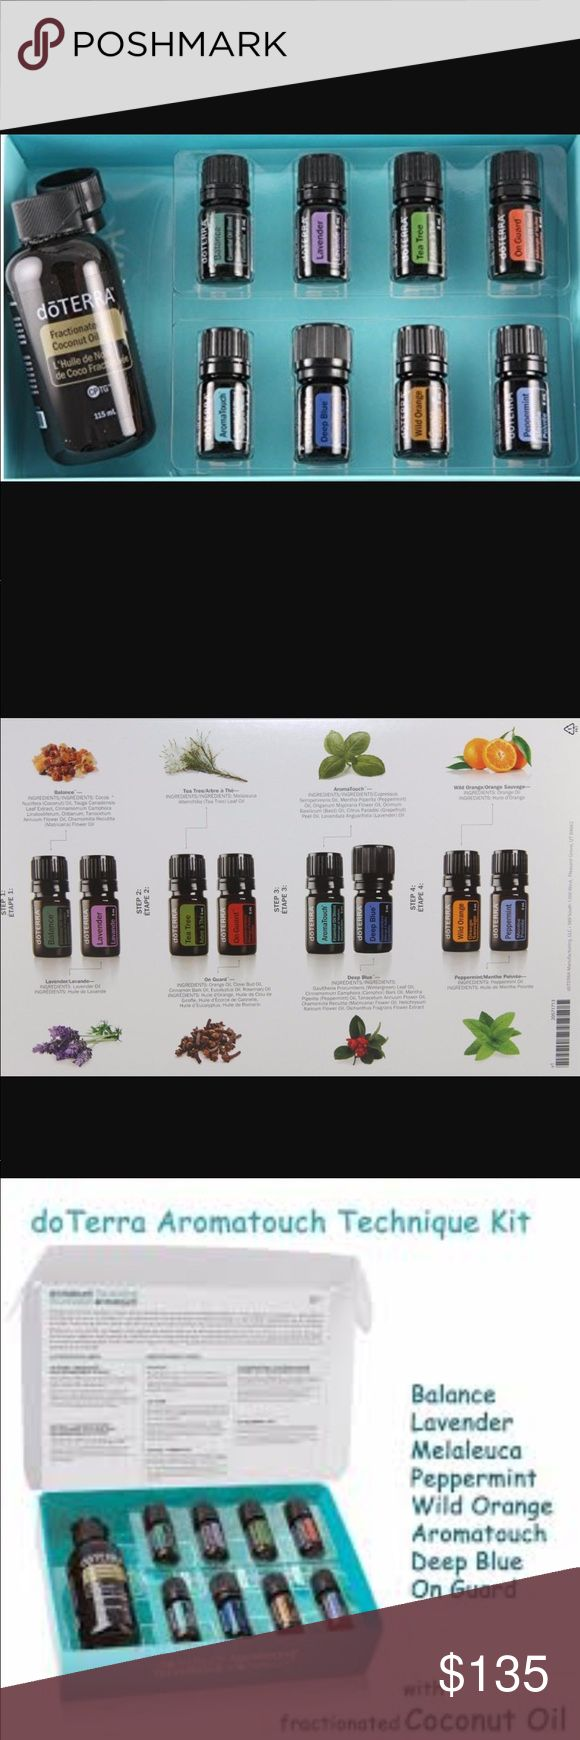 Brand New Doterra Touch Kit The dōTERRA AromaTouch Technique is a simple step-by-step method of applying therapeutic grade essential oils topically to produce a profound whole-body wellness experience. The benefits of the AromaTouch Technique include stress management, immune support, and autonomic balance. Kit includes 5 mL bottles of dōTERRA Balance Blend, Lavender, Melaleuca, On Guard® Protective Blend, AromaTouch® Massage Blend, Deep Blue® Soothing Blend, Wild Orange, Peppermint and…